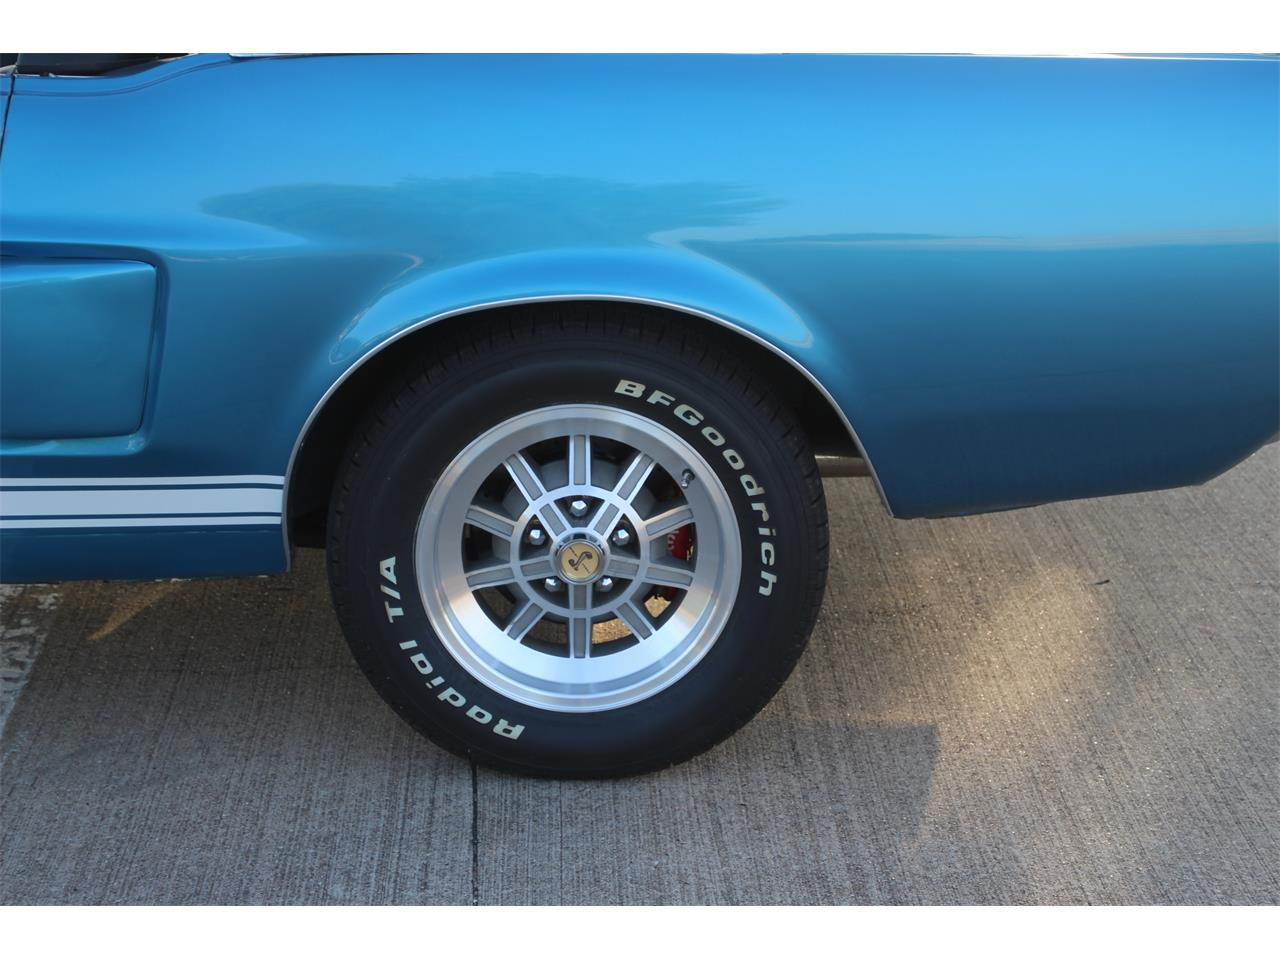 Large Picture of Classic '67 Ford Mustang Shelby GT500  located in Richardson Texas - $41,000.00 Offered by a Private Seller - NP08